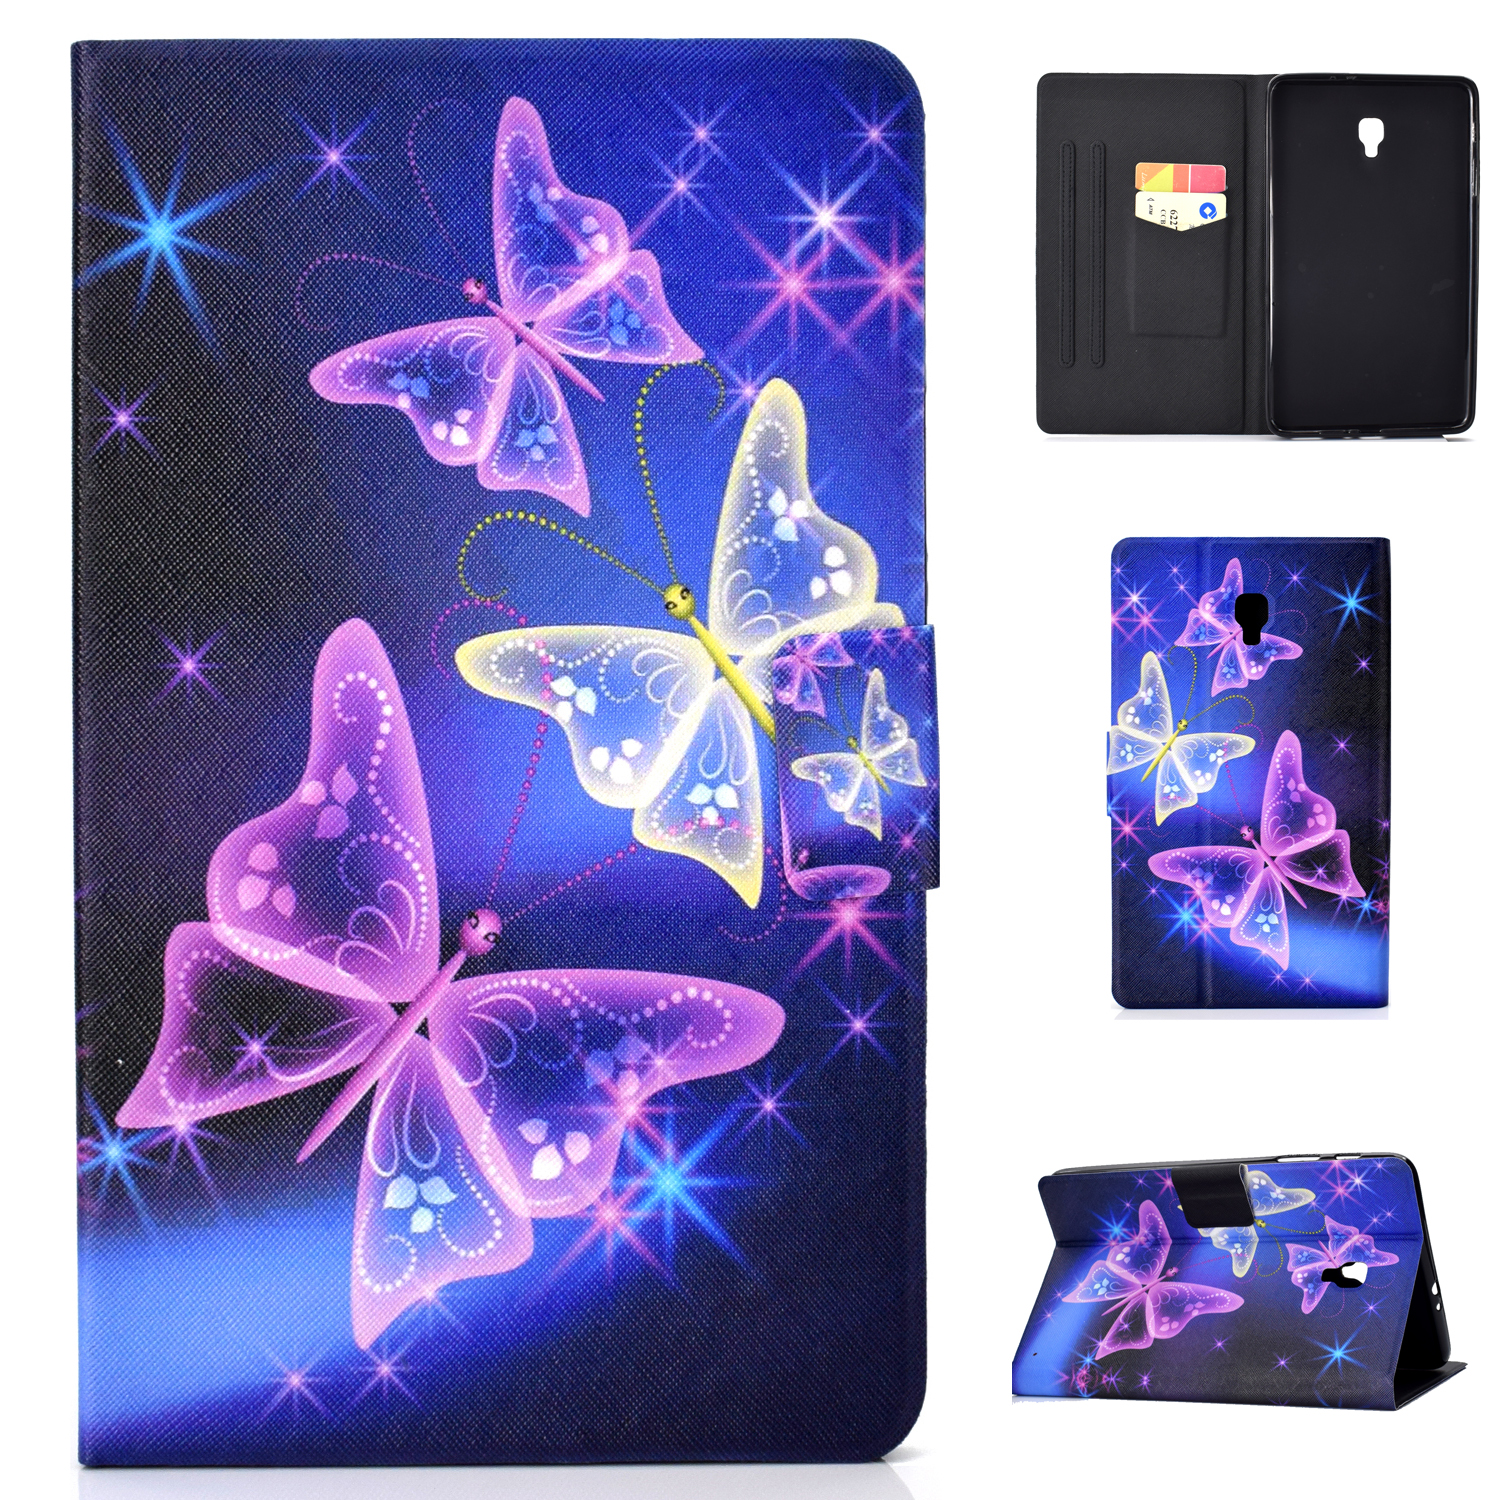 Case for Samsung Galaxy Tab A 8.0-inch SM-T380 2017 Tablet, Allytech Smart Folio Stand Shell Cover with Auto Sleep Wake for Samsung Galaxy Tab A 8.0-inch SM-T380 SM-T385 2017, Sparkle Butterfly